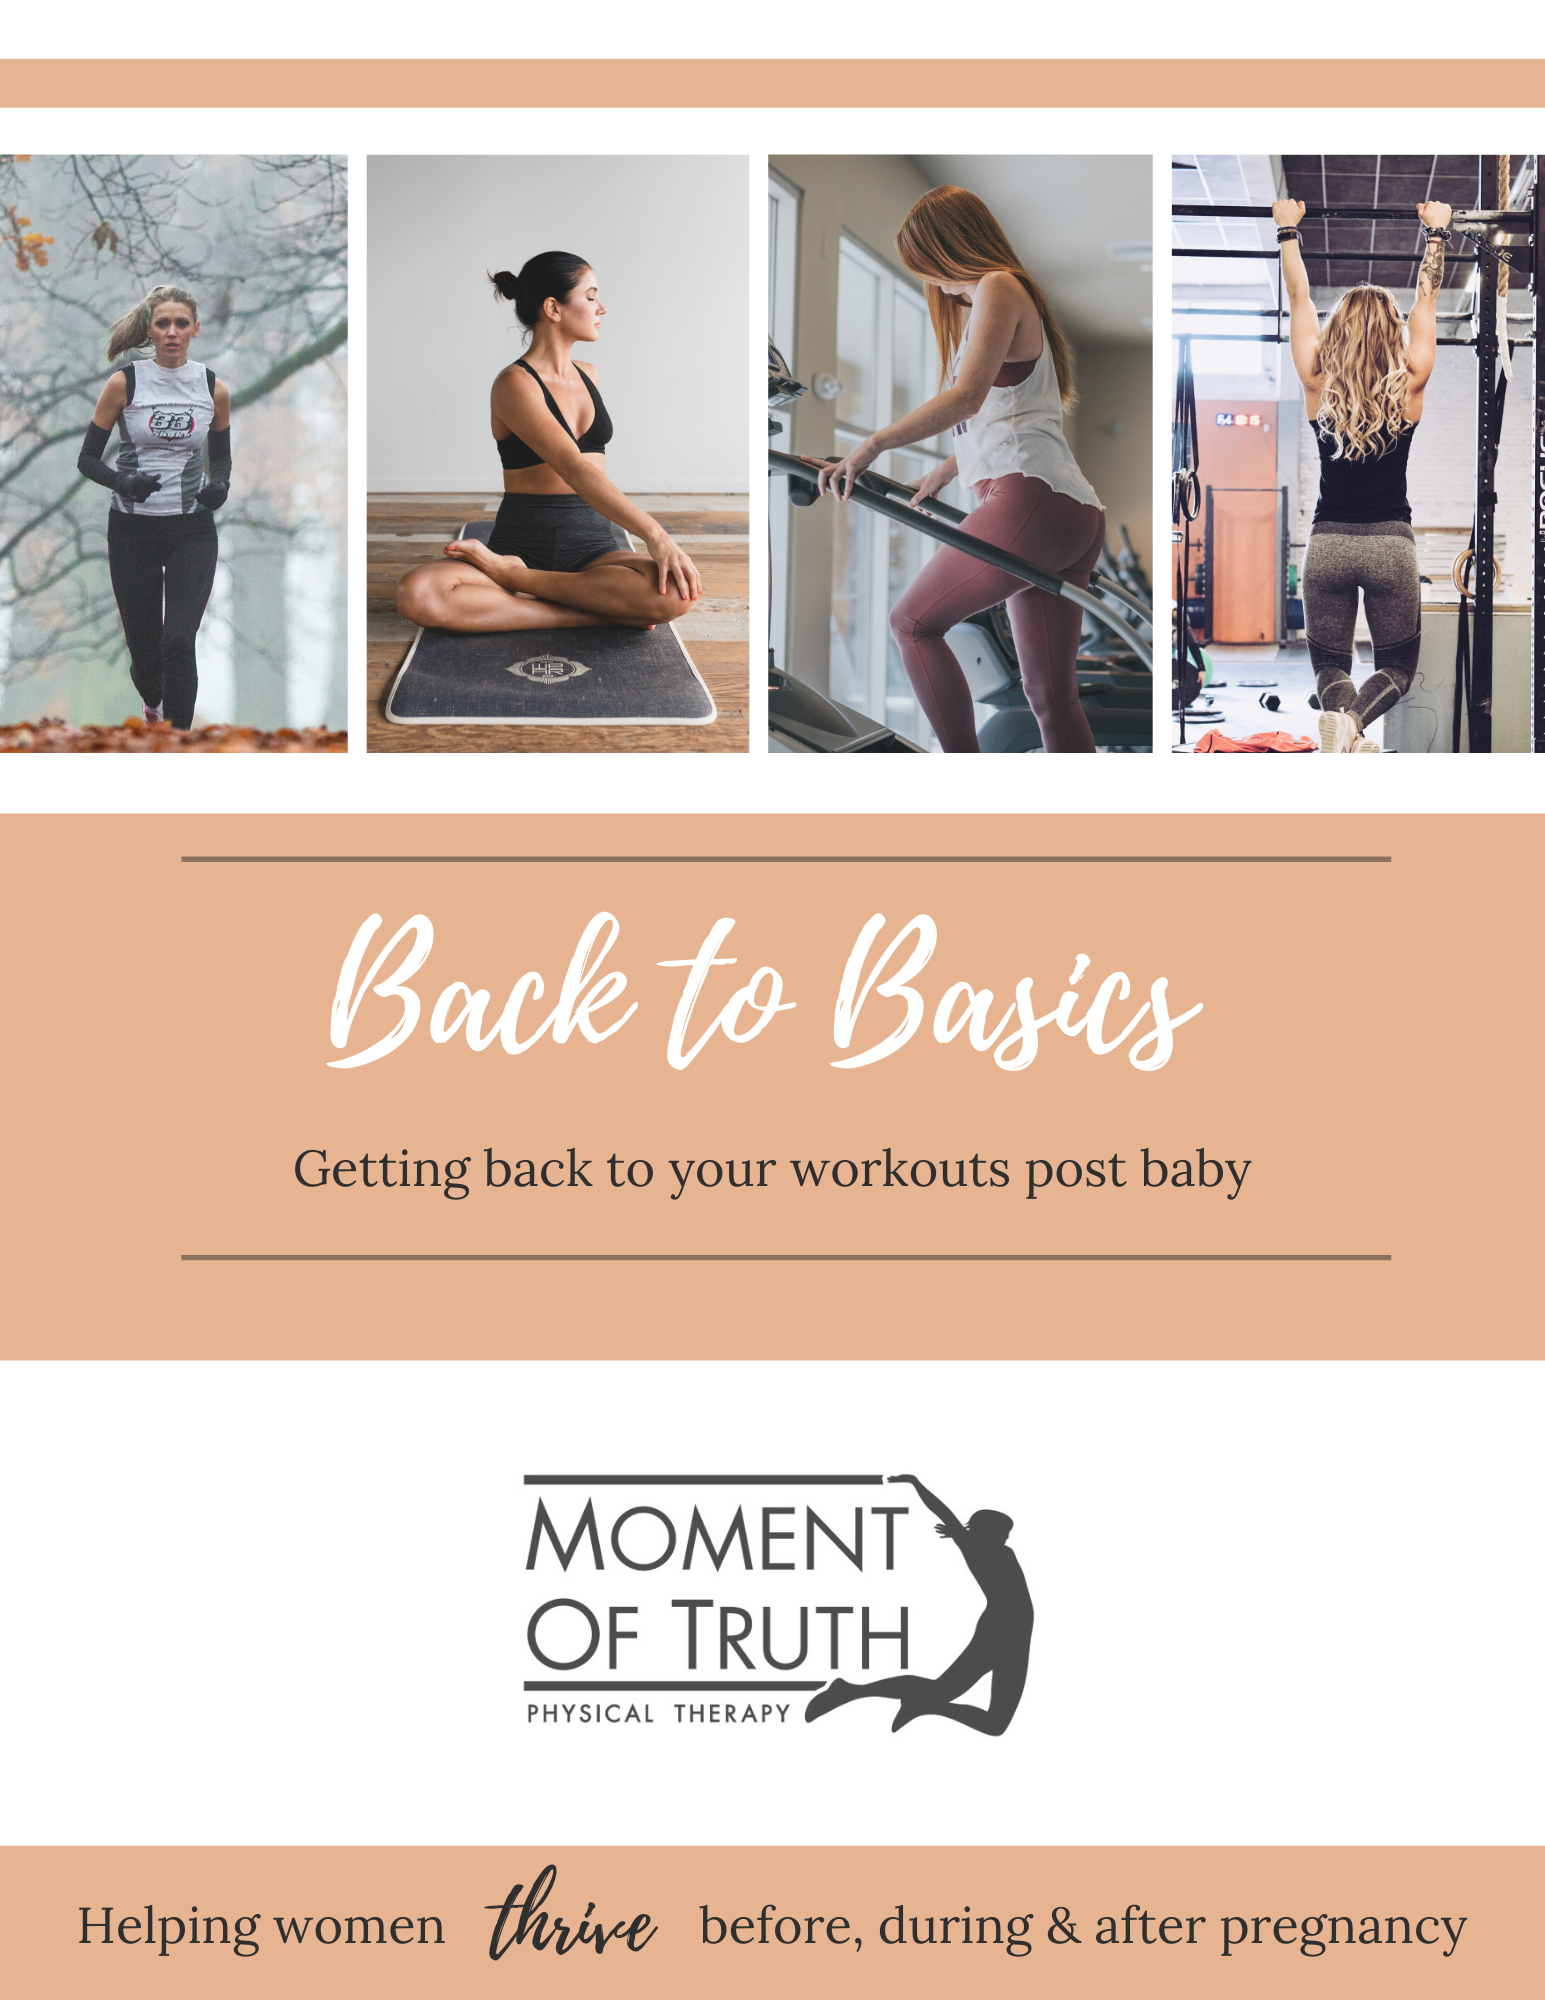 Back to Basics: Getting back to your workouts post baby | Moment of Truth Physical Therapy